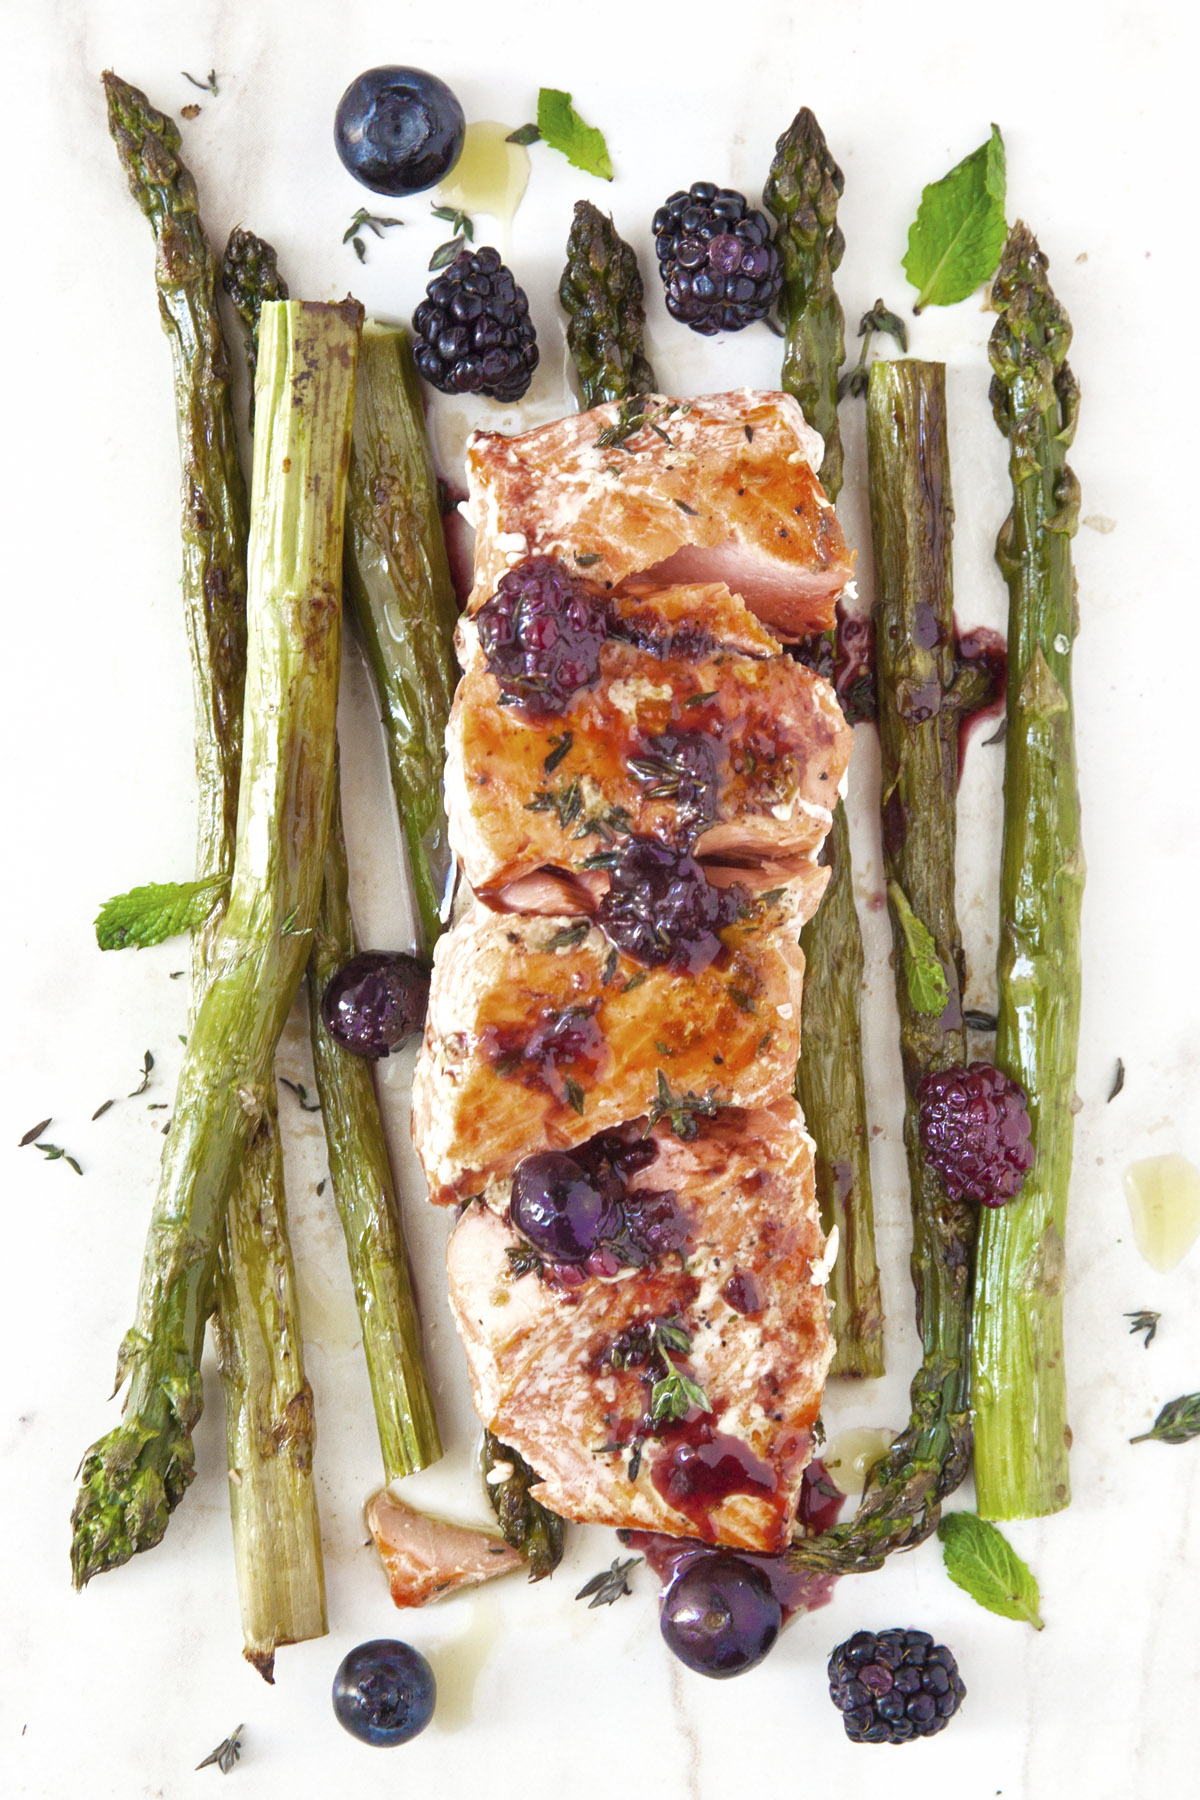 Grilled Salmon with Asparagus and Berry Sauce